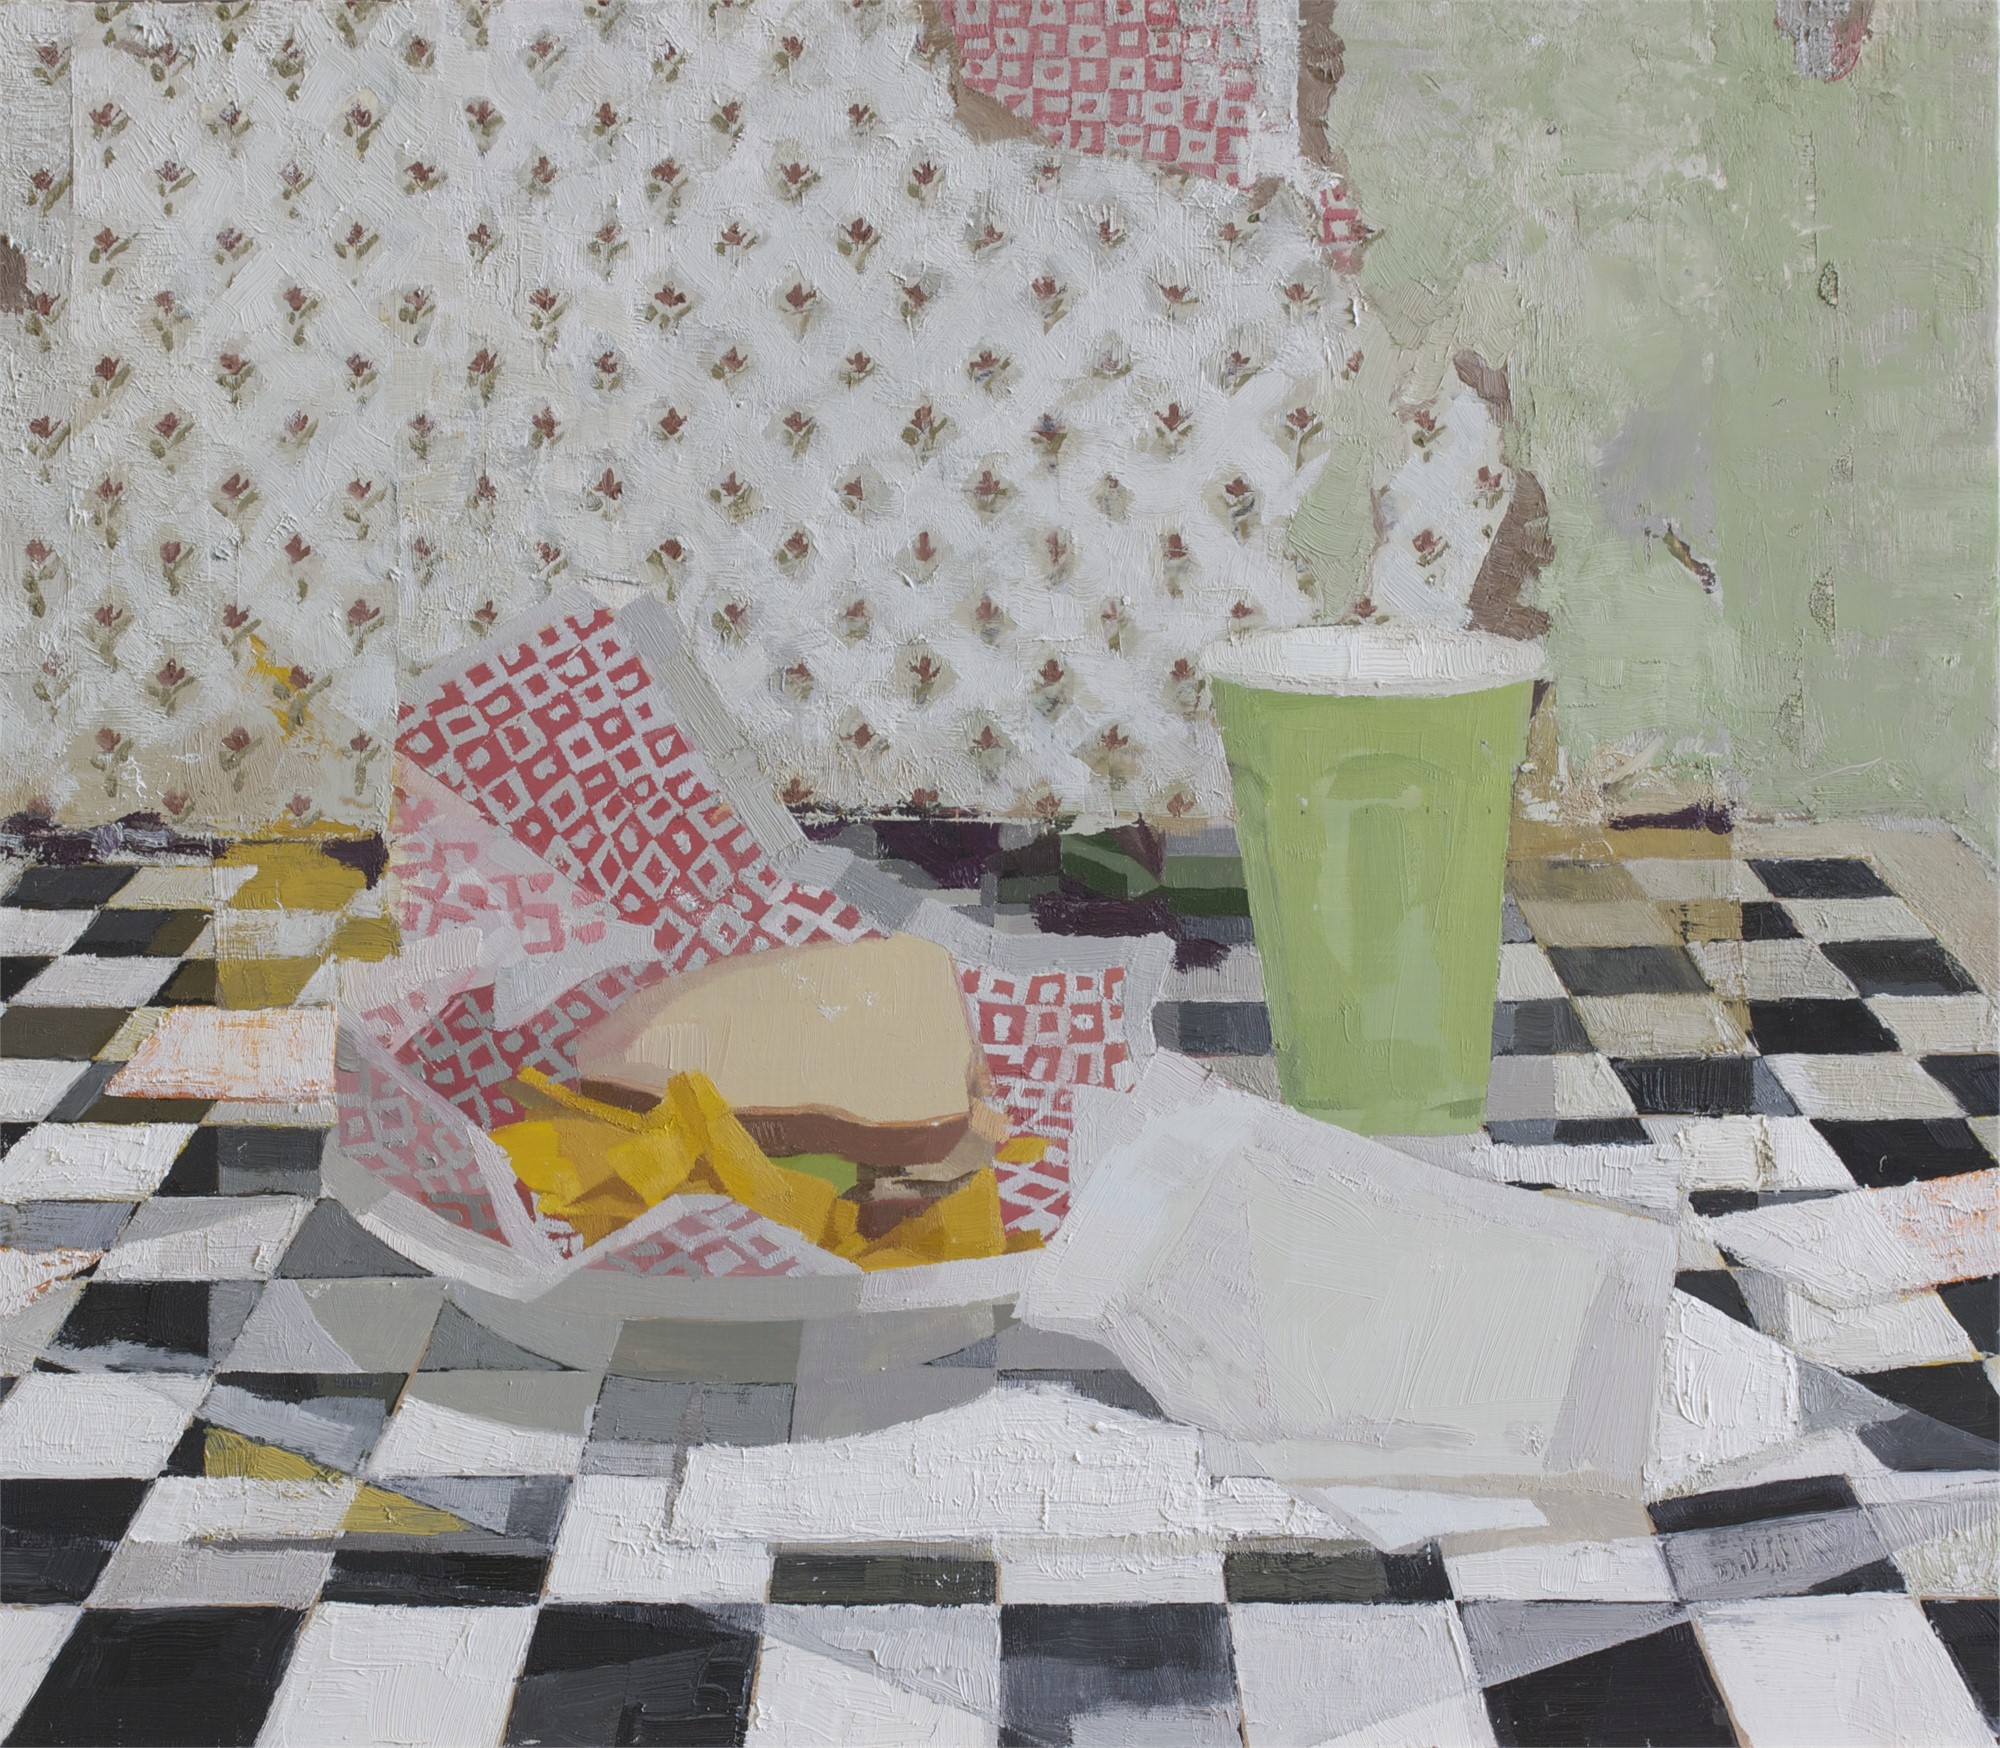 Sandwich #5 by Zoey Frank